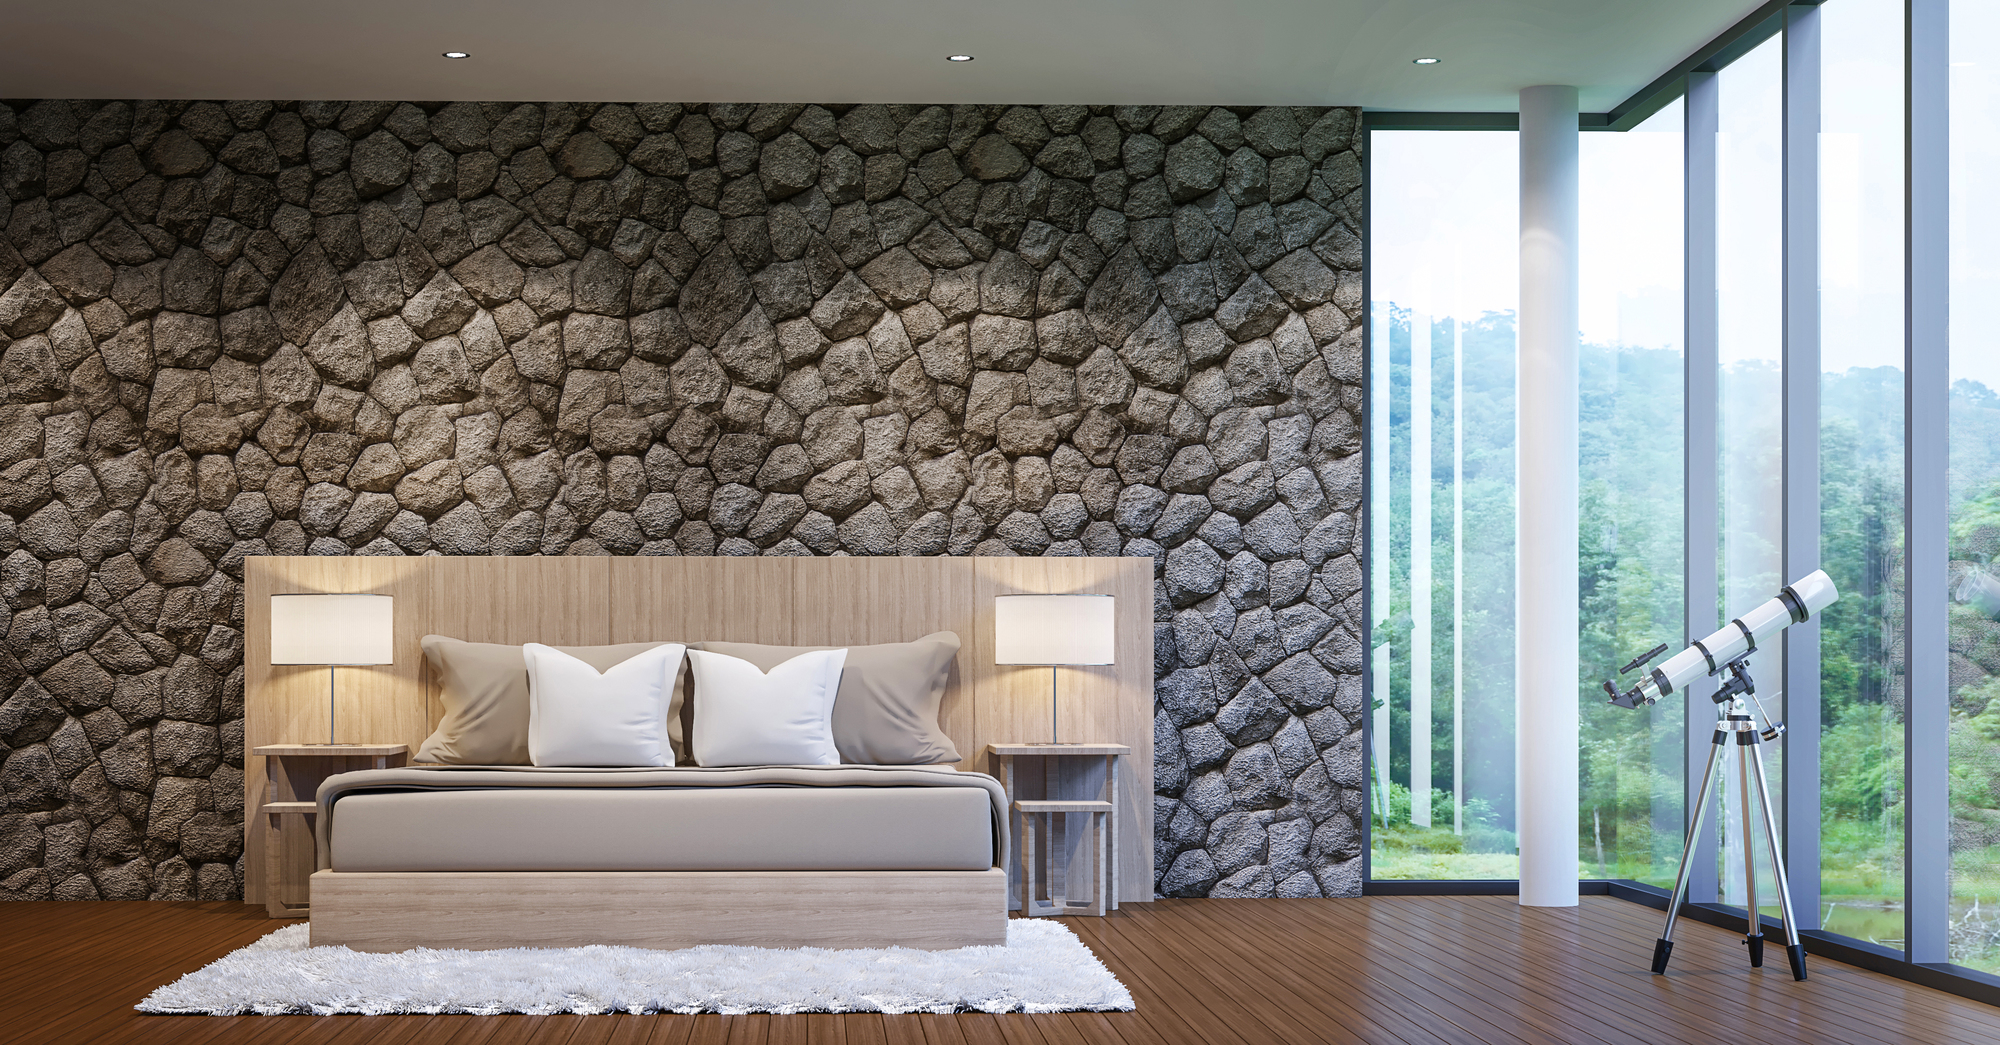 Modern luxury bedroom decorate walls with nature stone  rough skin